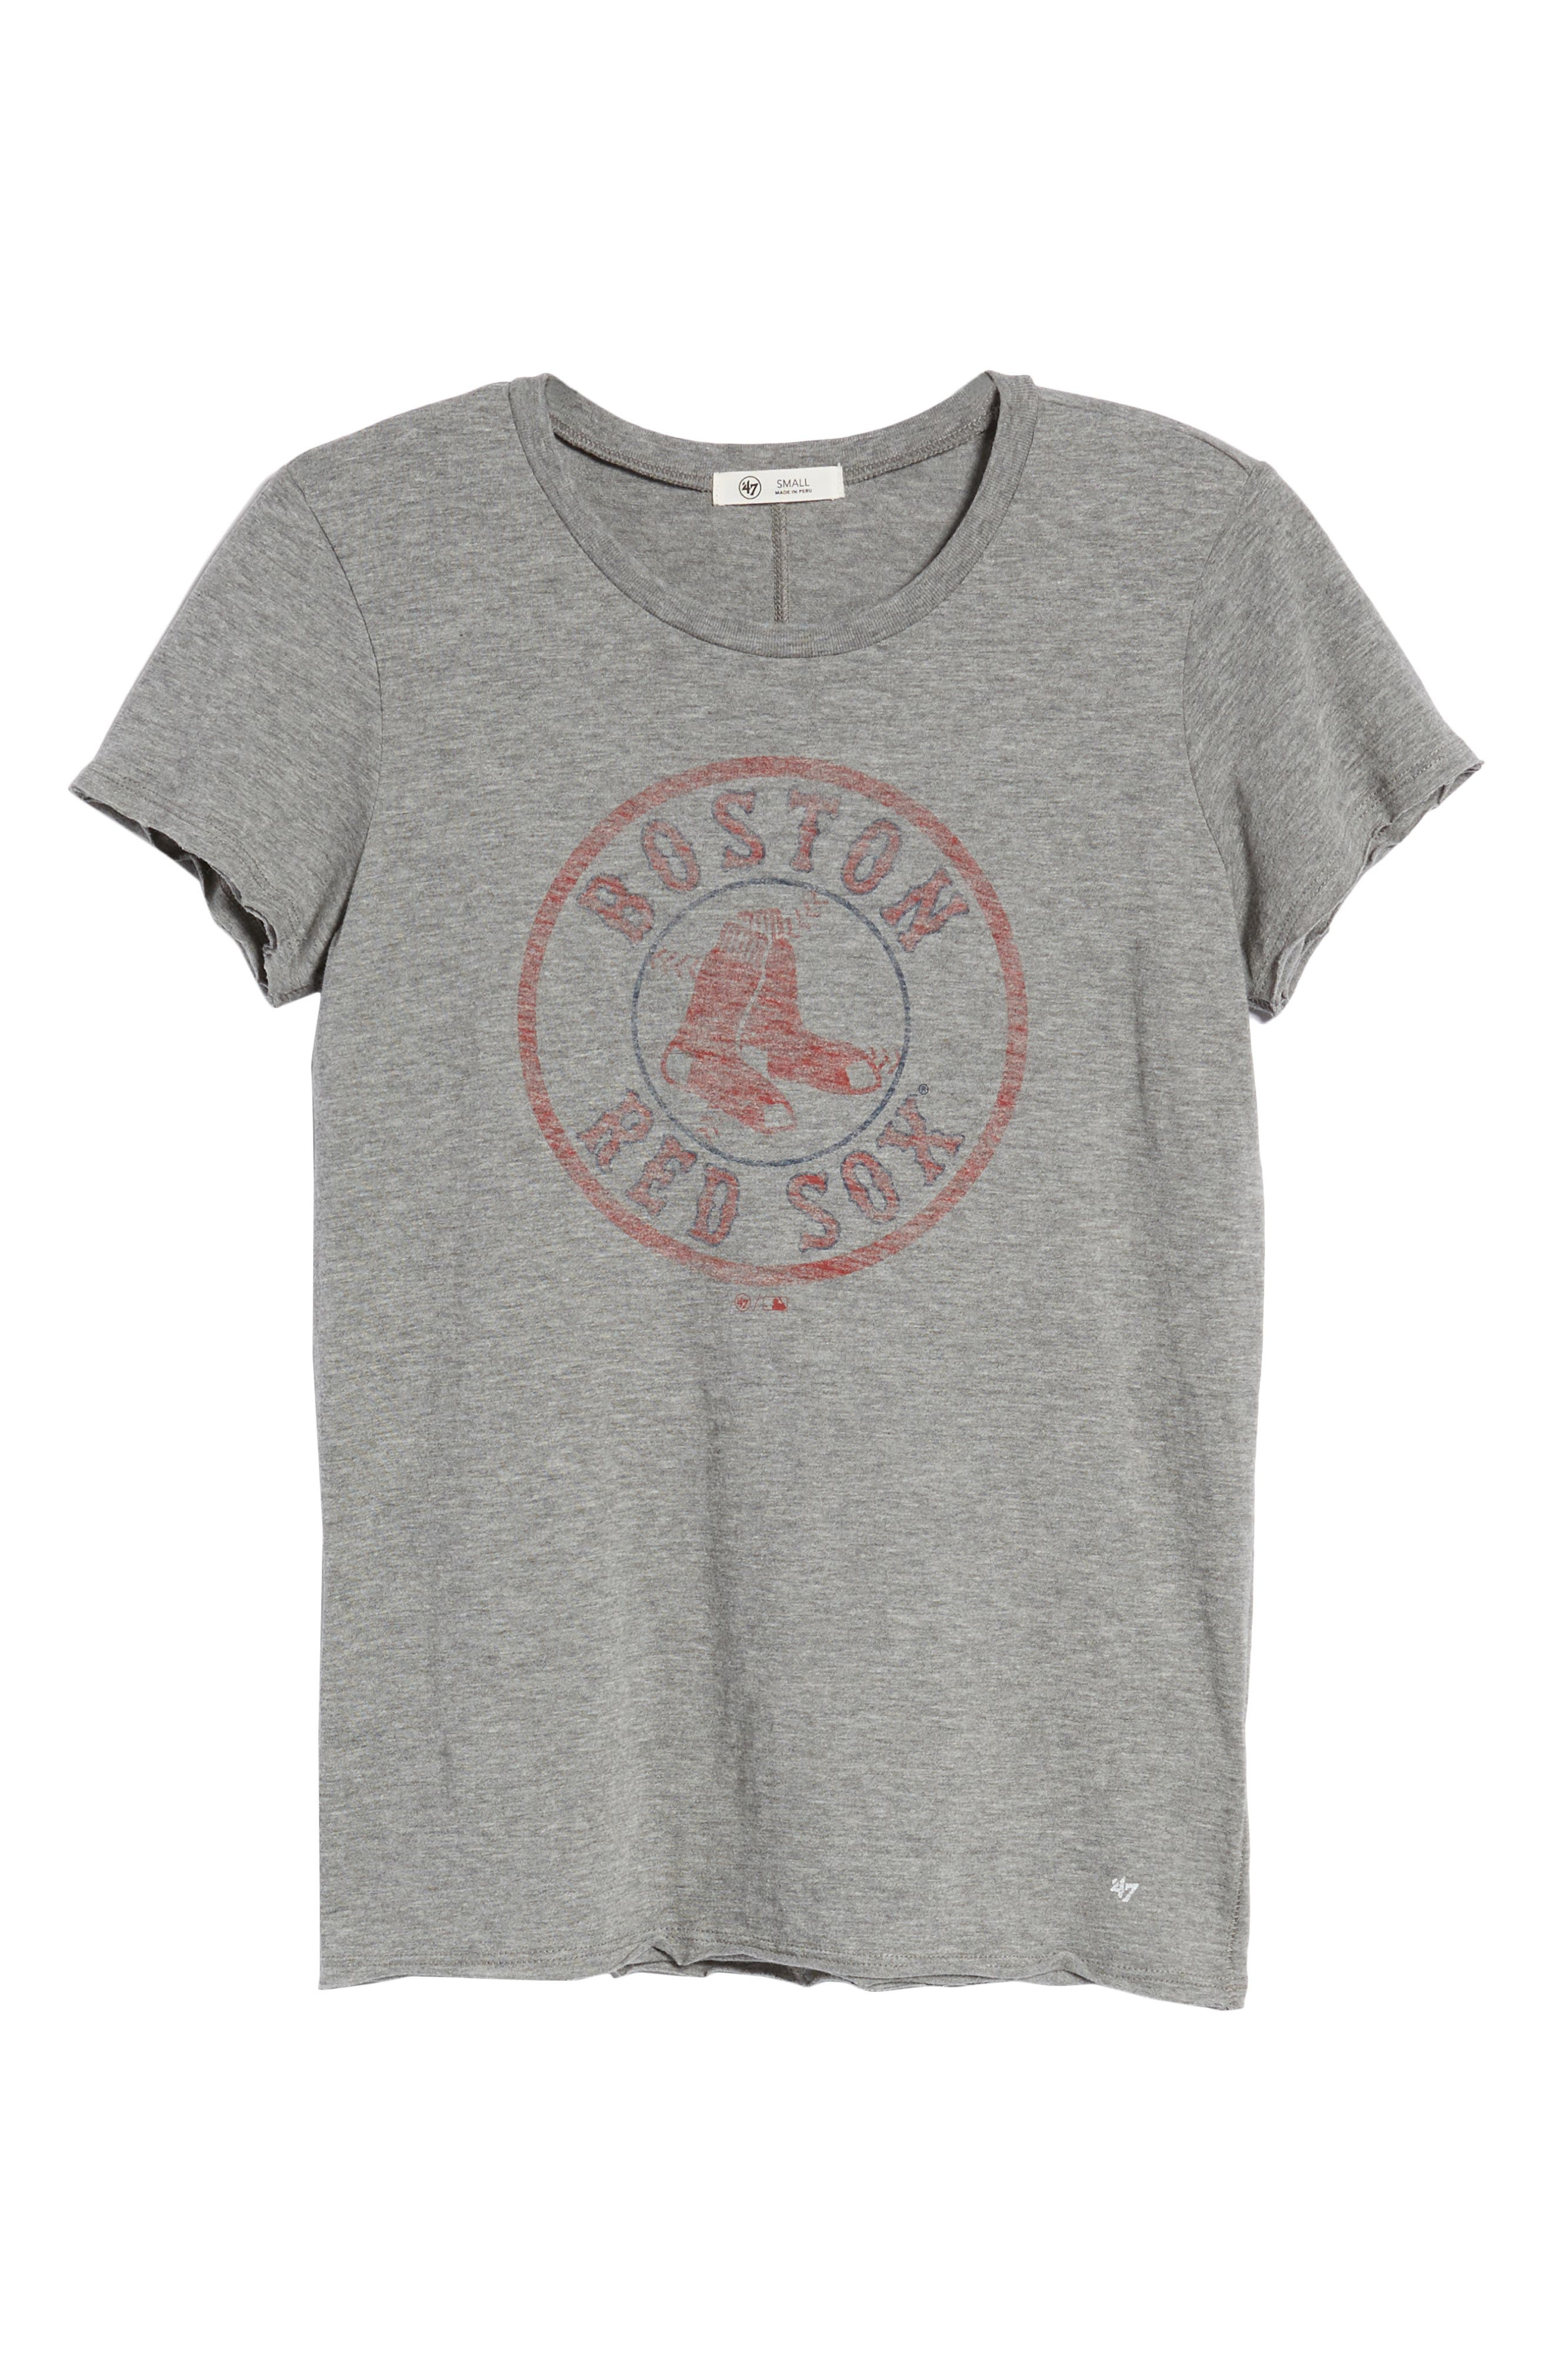 Boston Red Sox Fader Letter Tee,                             Alternate thumbnail 7, color,                             Slate Grey